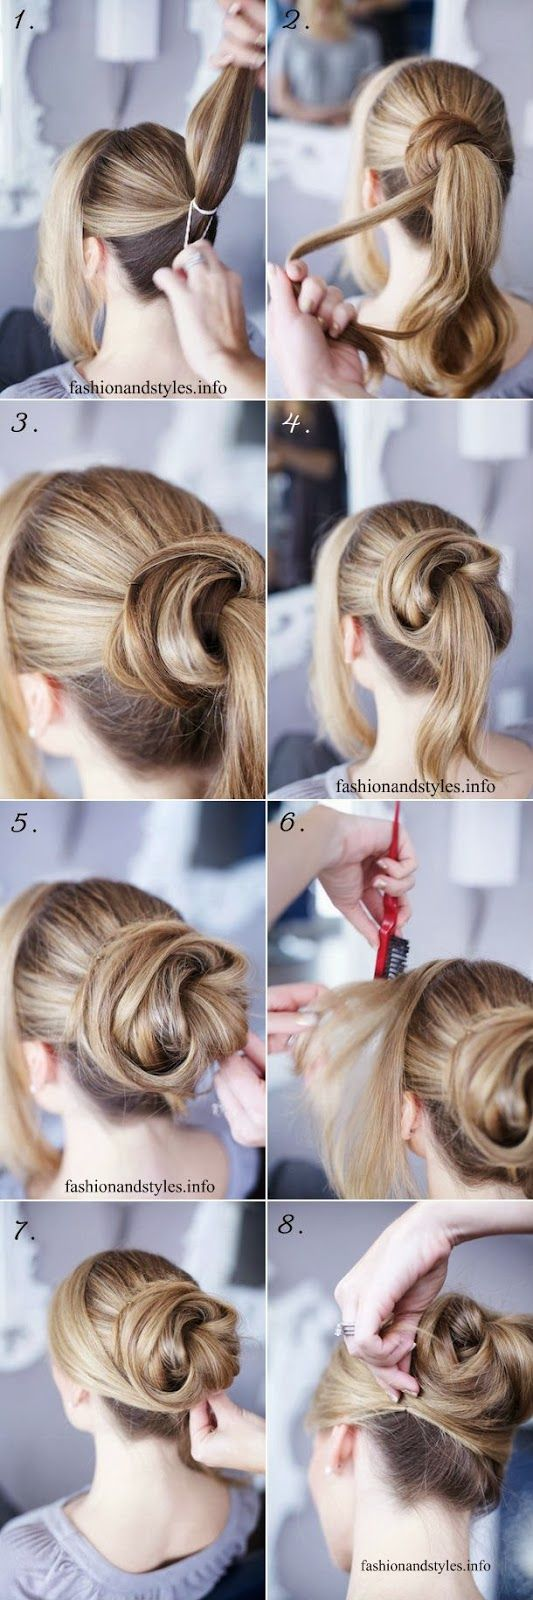 fashion & dance : hair Tutorial